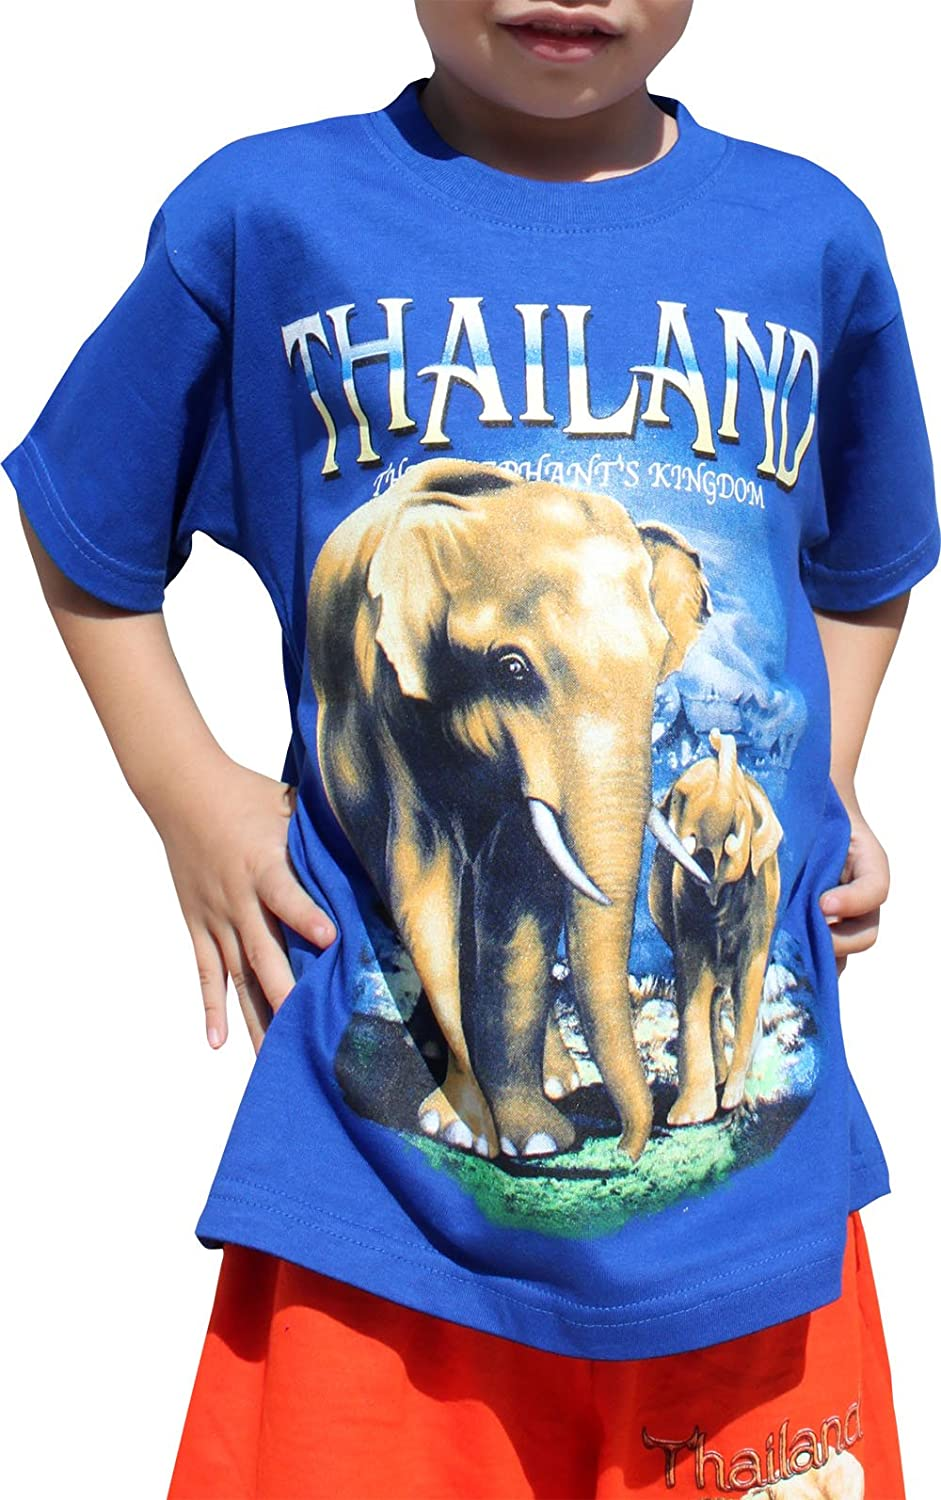 Full Funk Cotton Childrens Shirt Sawasdee Thailand Elephant Nature Culture, Large, Blue